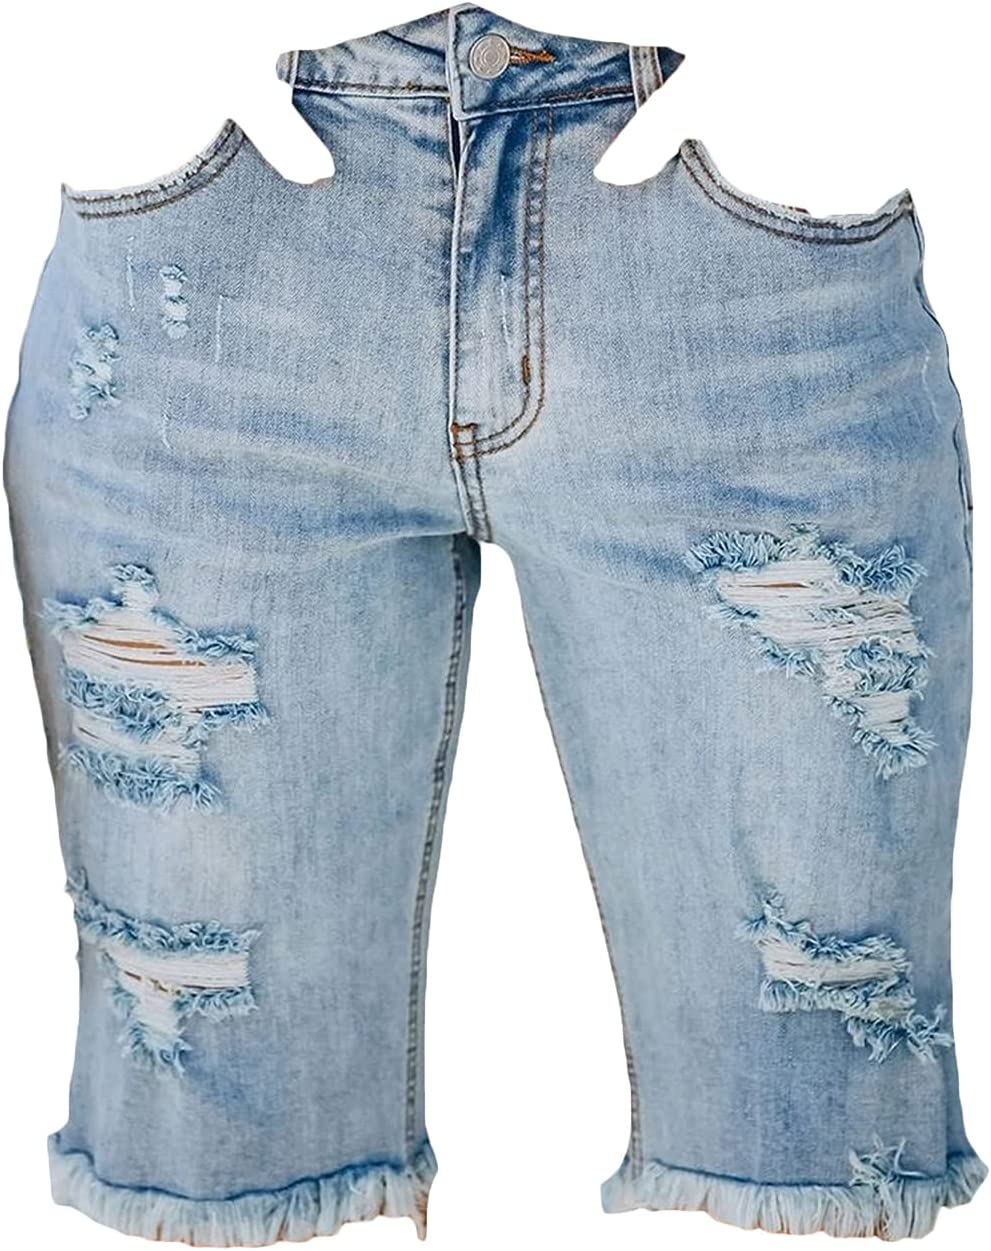 Women's Knee-Length Denim Shorts Mid Rise Distressed Bermuda Short Jeans Ripped Washed Frayed Slimming Hot Short Pant (Light Blue,XX-Large)